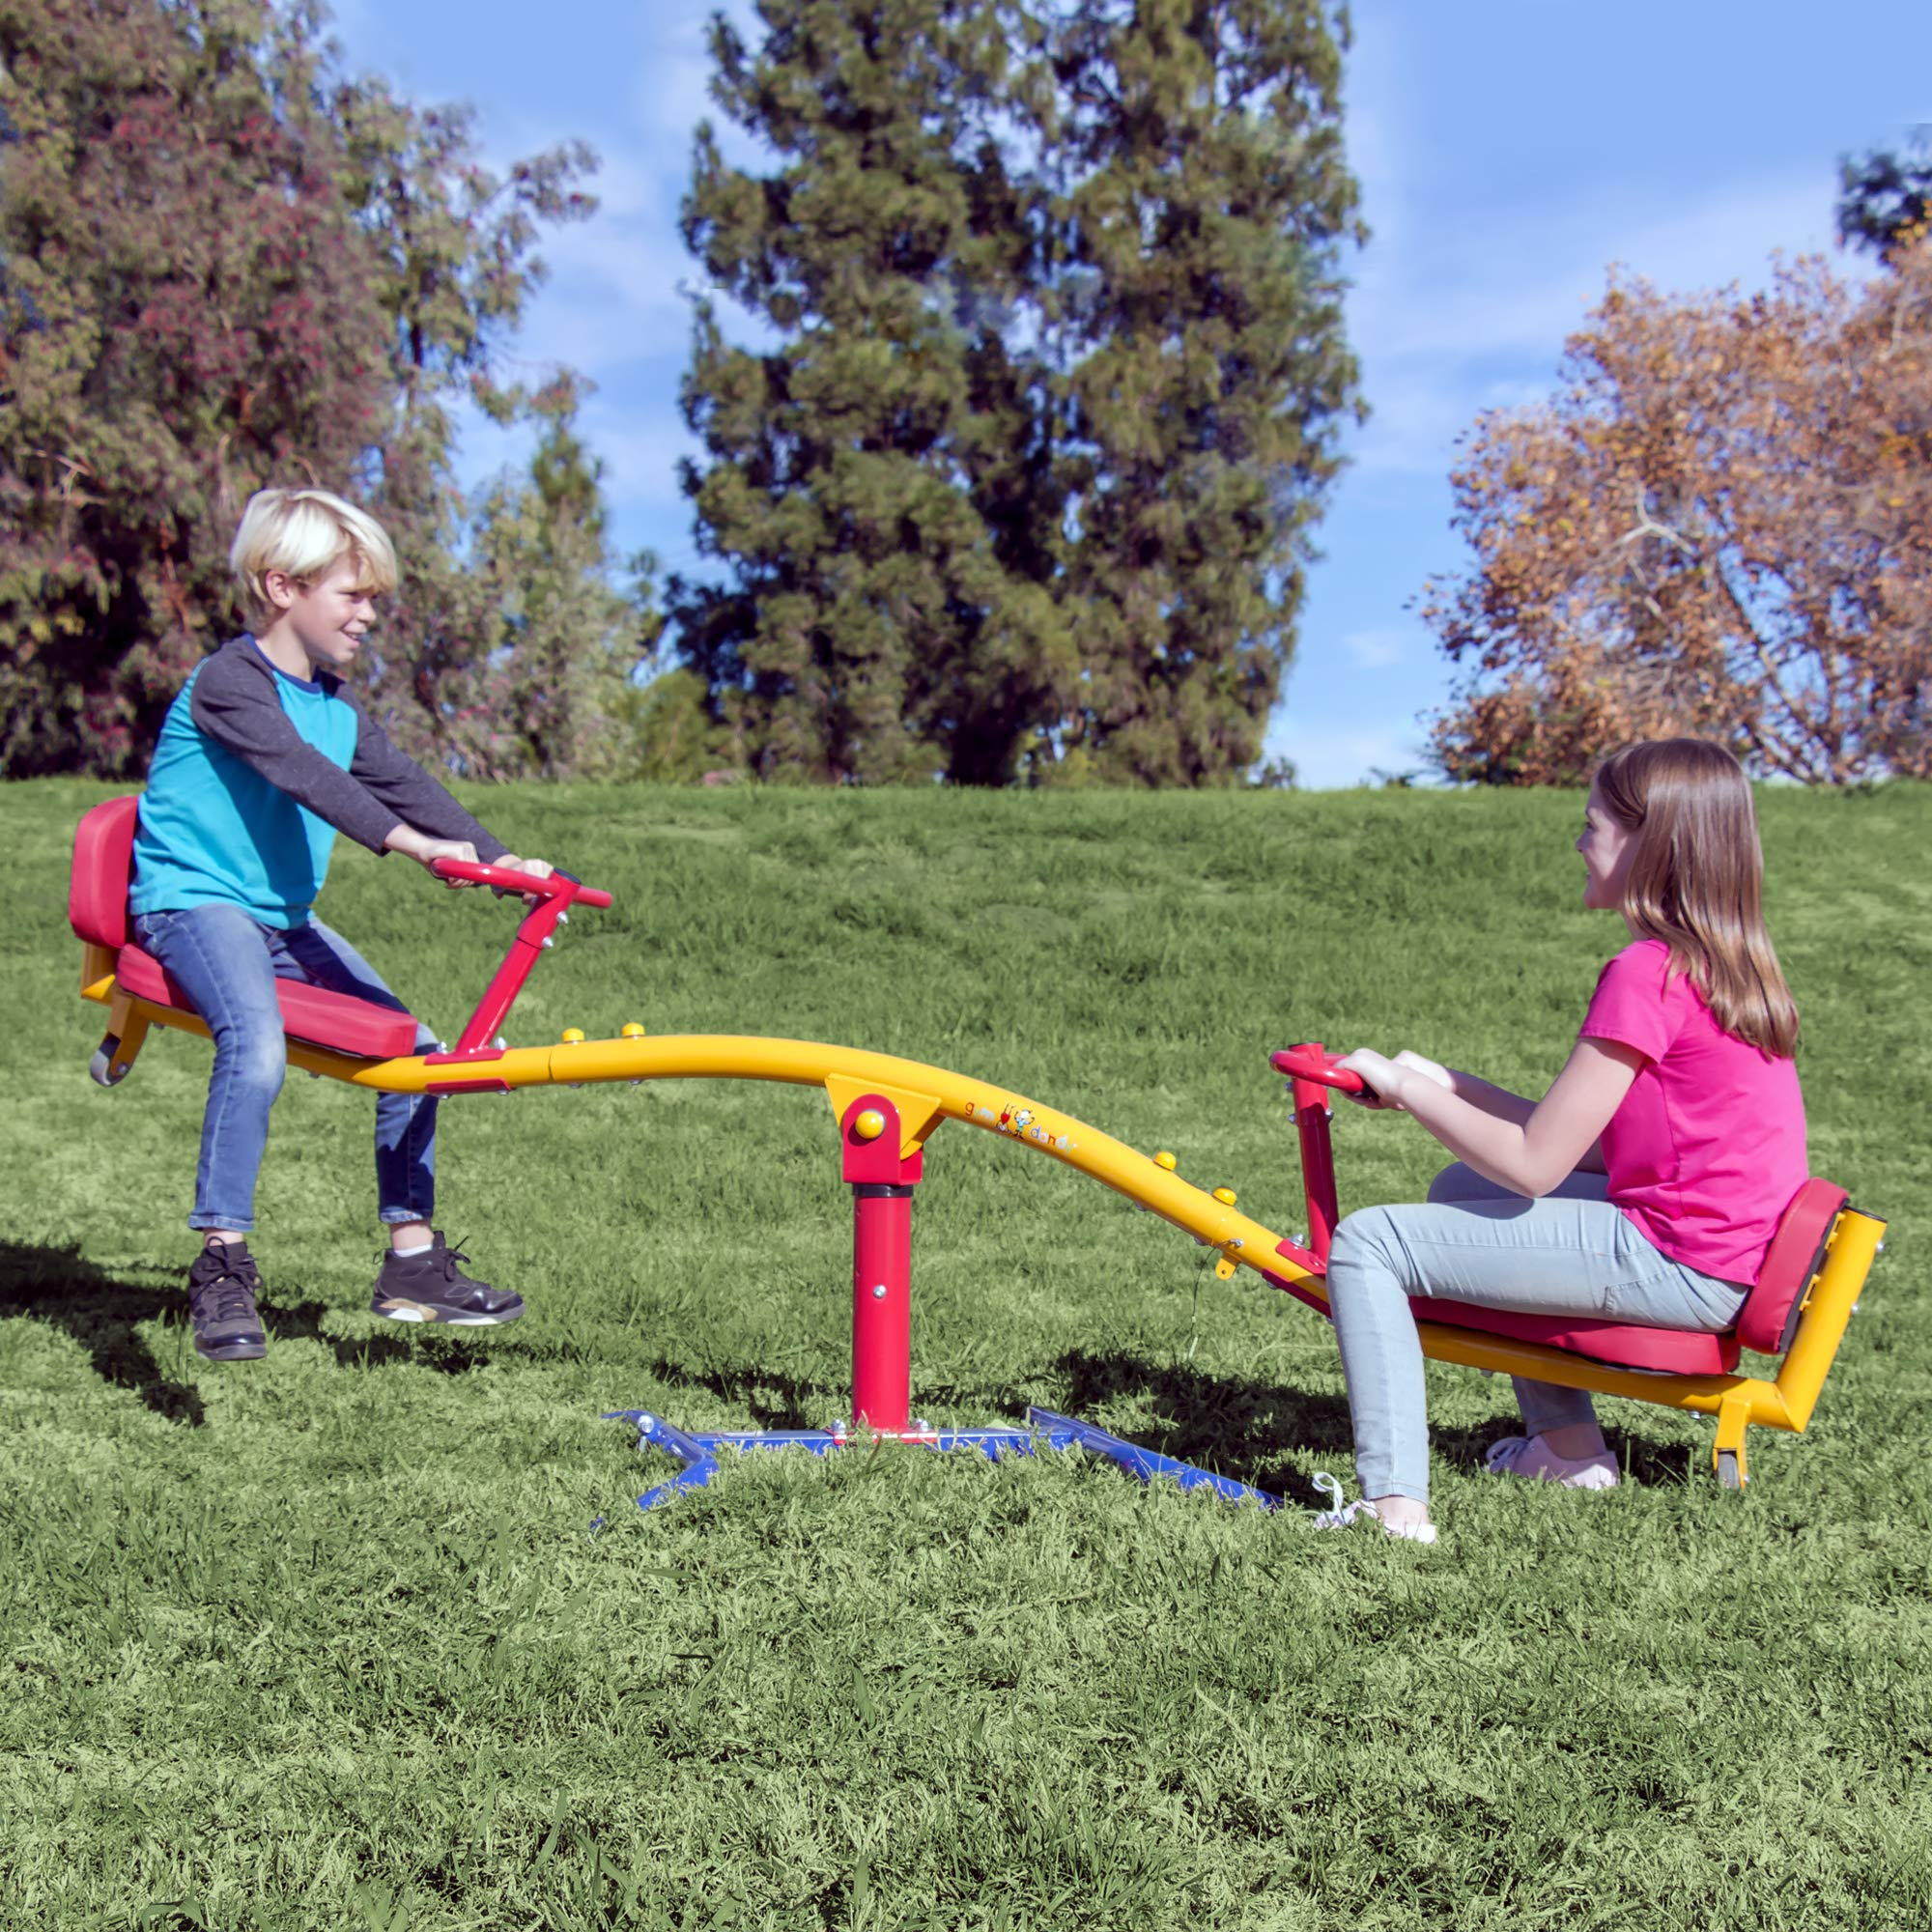 Gym Dandy Spinning Teeter Totter - Impact Absorbing Kids Playground Equipment - 360 Degree Rotation by Gym Dandy